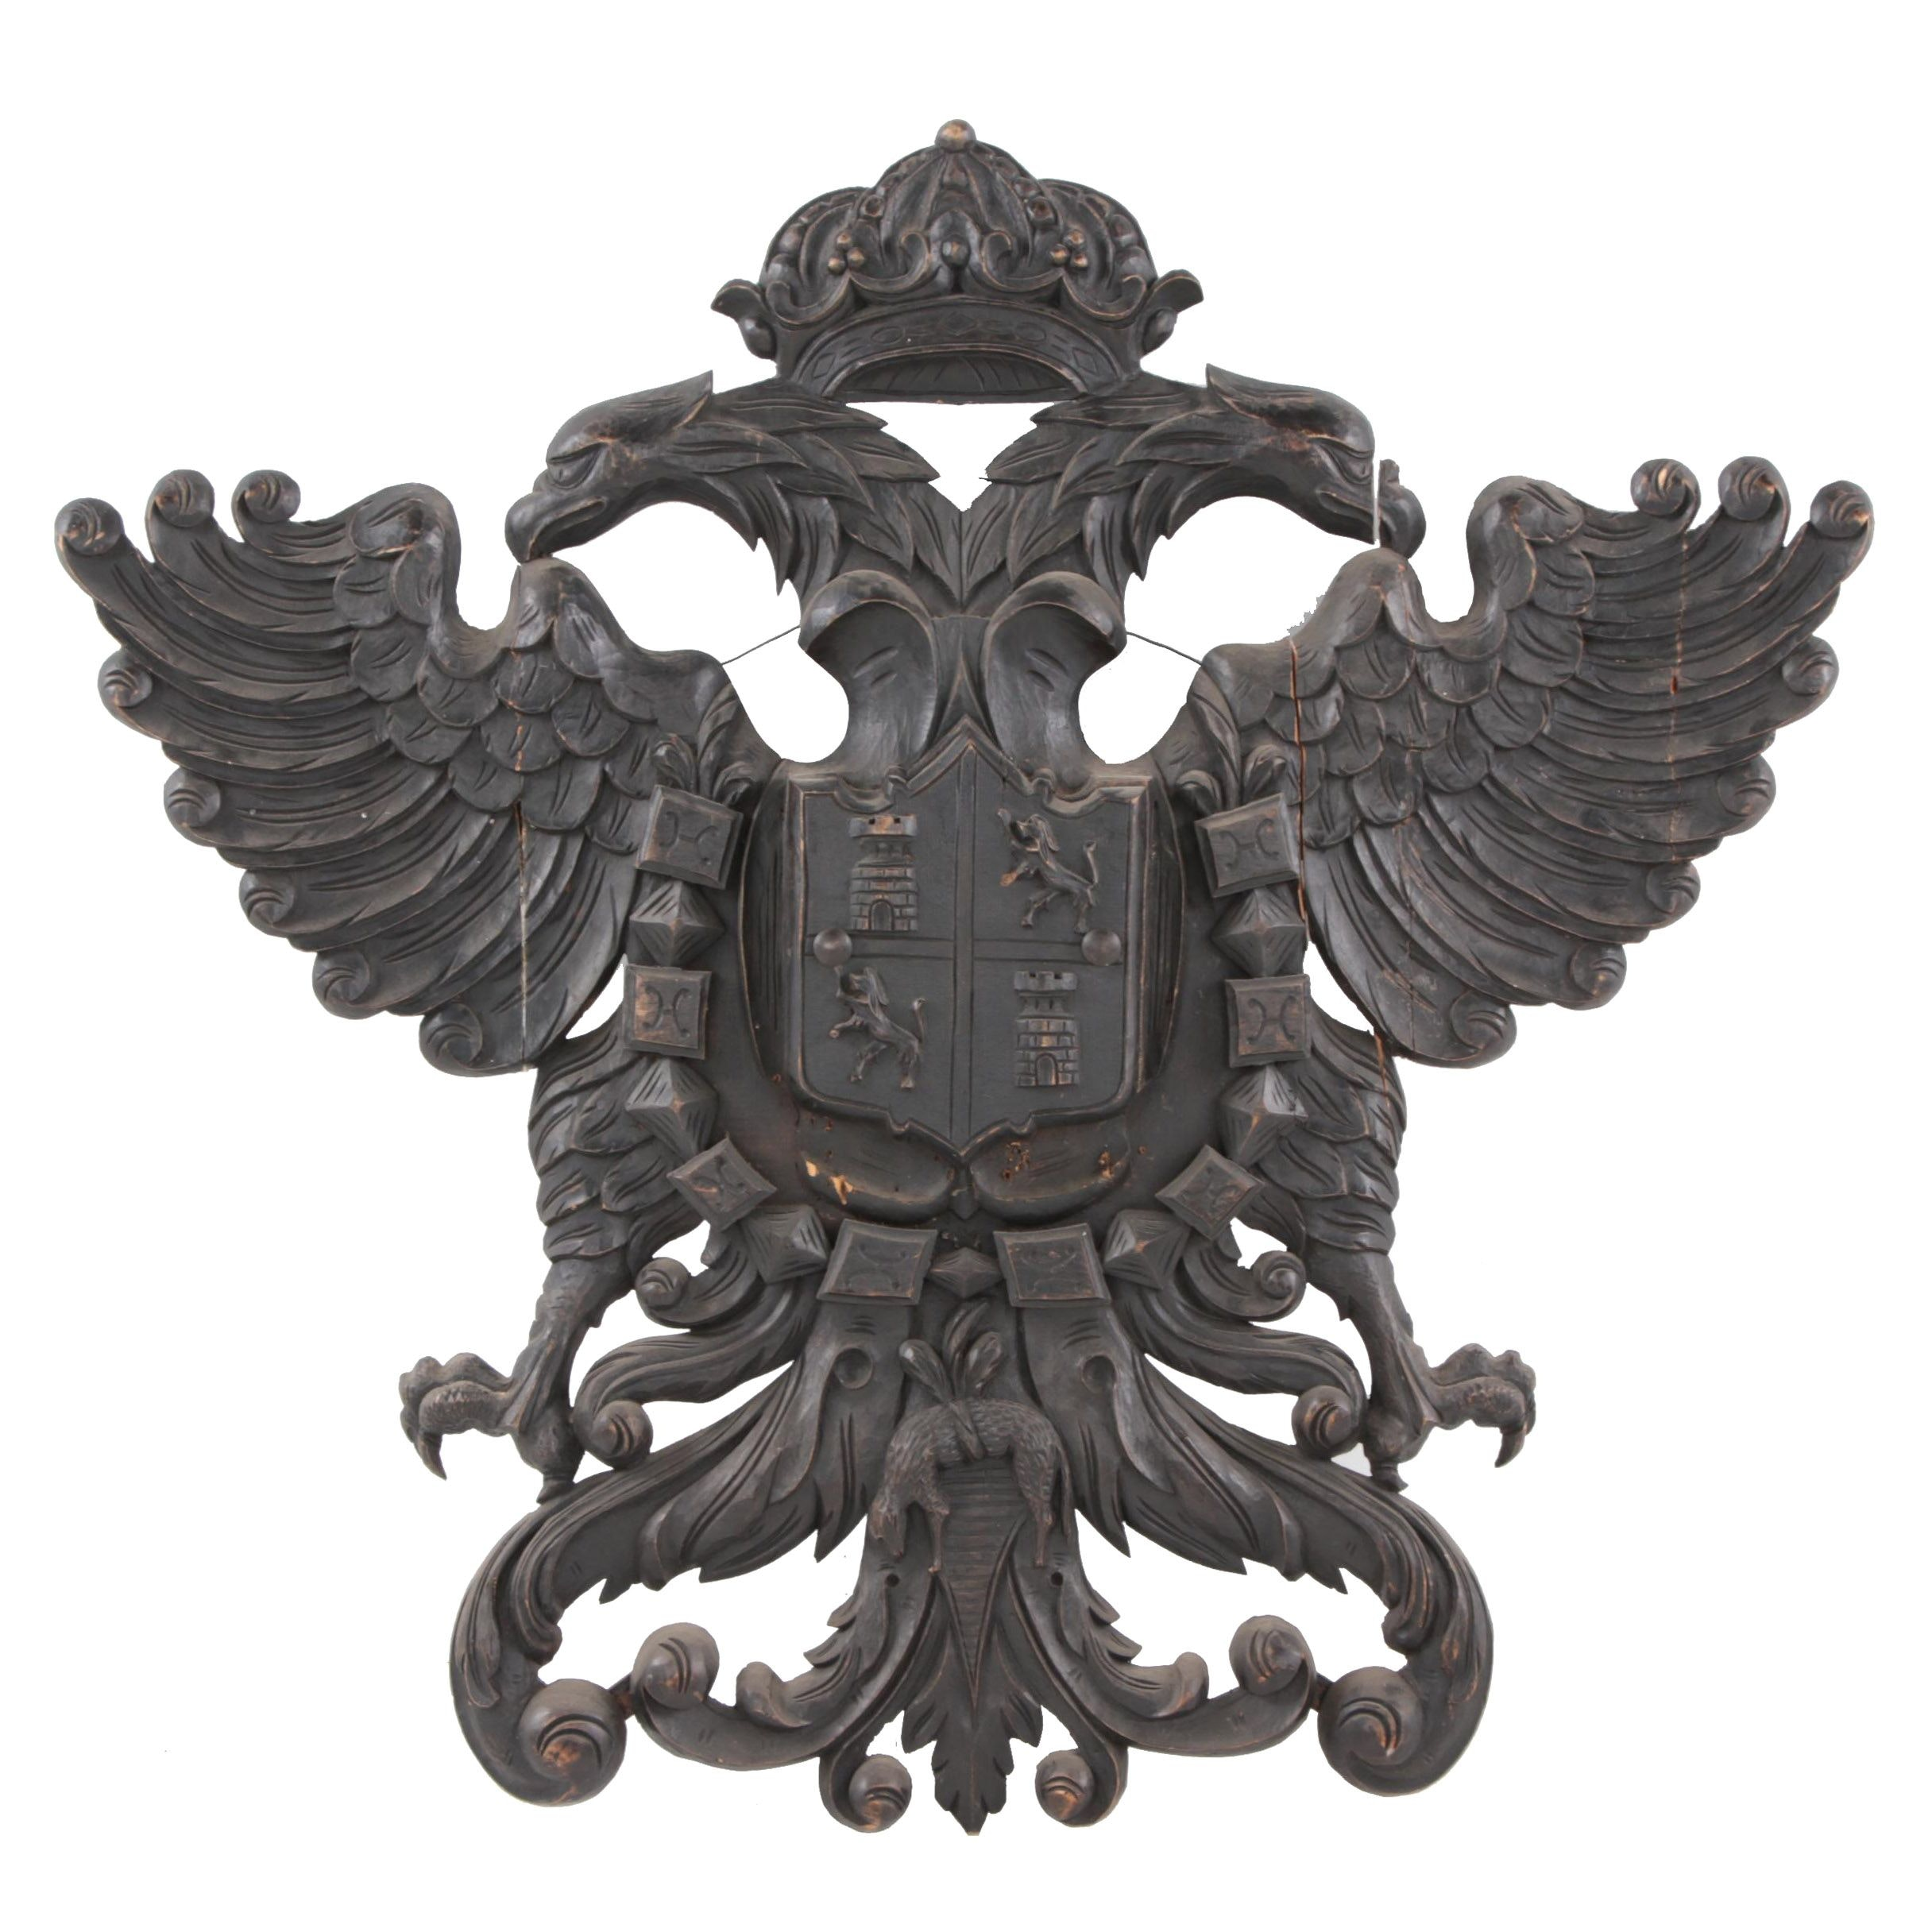 Hand-Carved Coat of Arms, Possibly German or Austrian, Early 20th Century